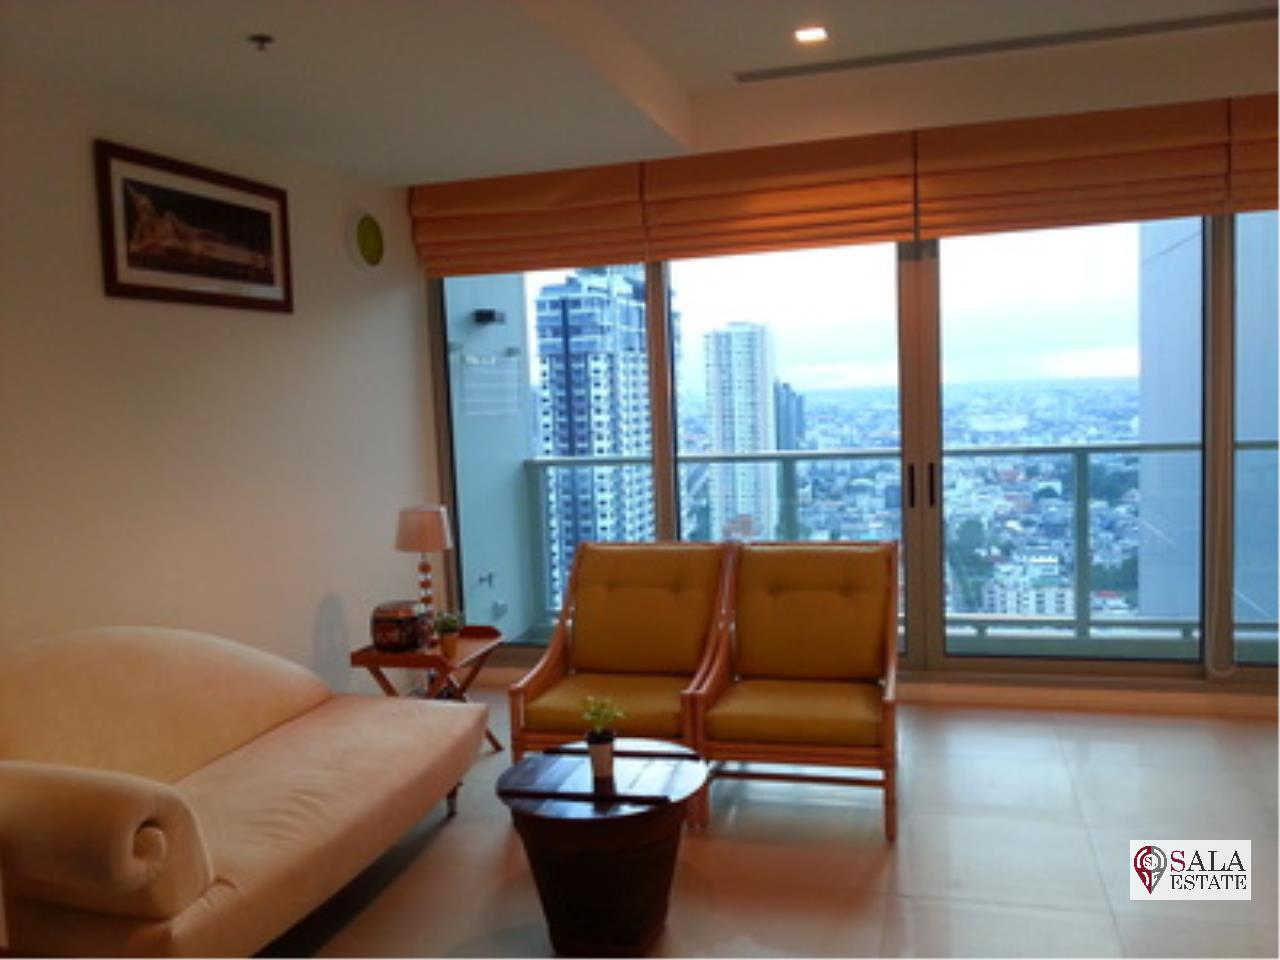 SALA ESTATE Agency's THE RIVER – NEAR CHAOPHRAYA RIVER, ICONSIAM 1